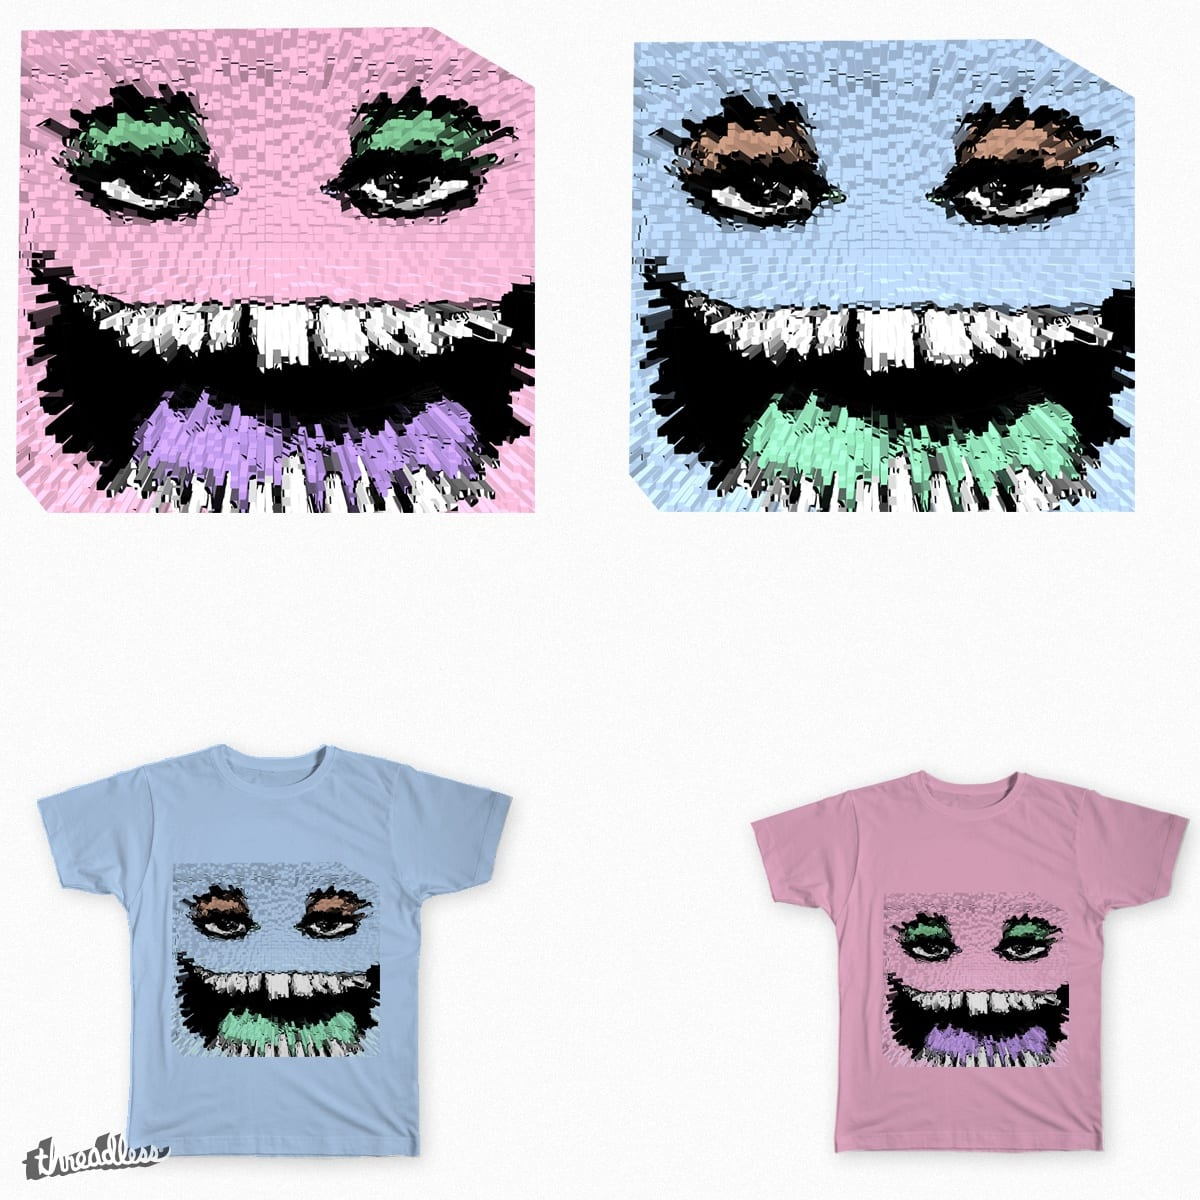 square face by jumbogiant21 on Threadless